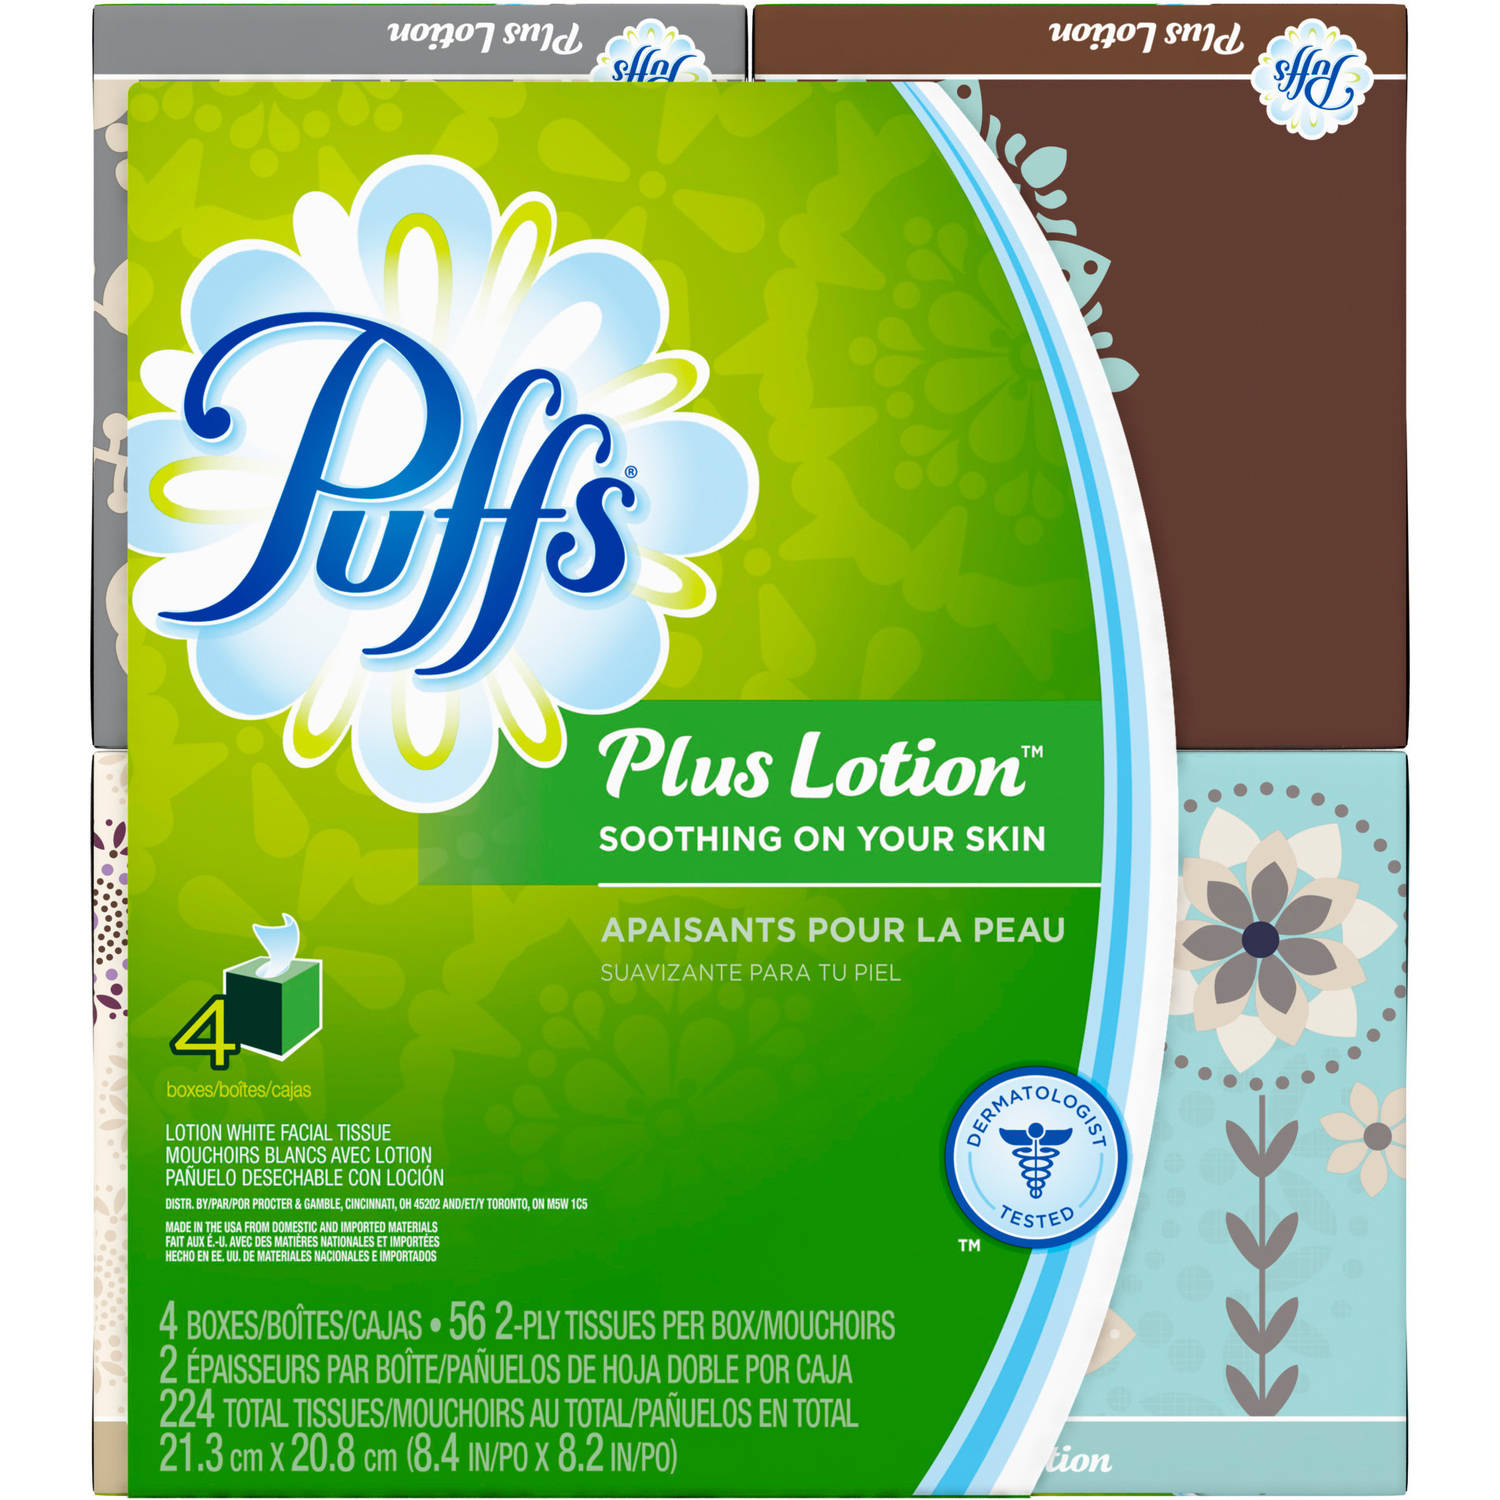 Puffs White Facial Tissues Plus Lotion, 56 sheets, 4 count